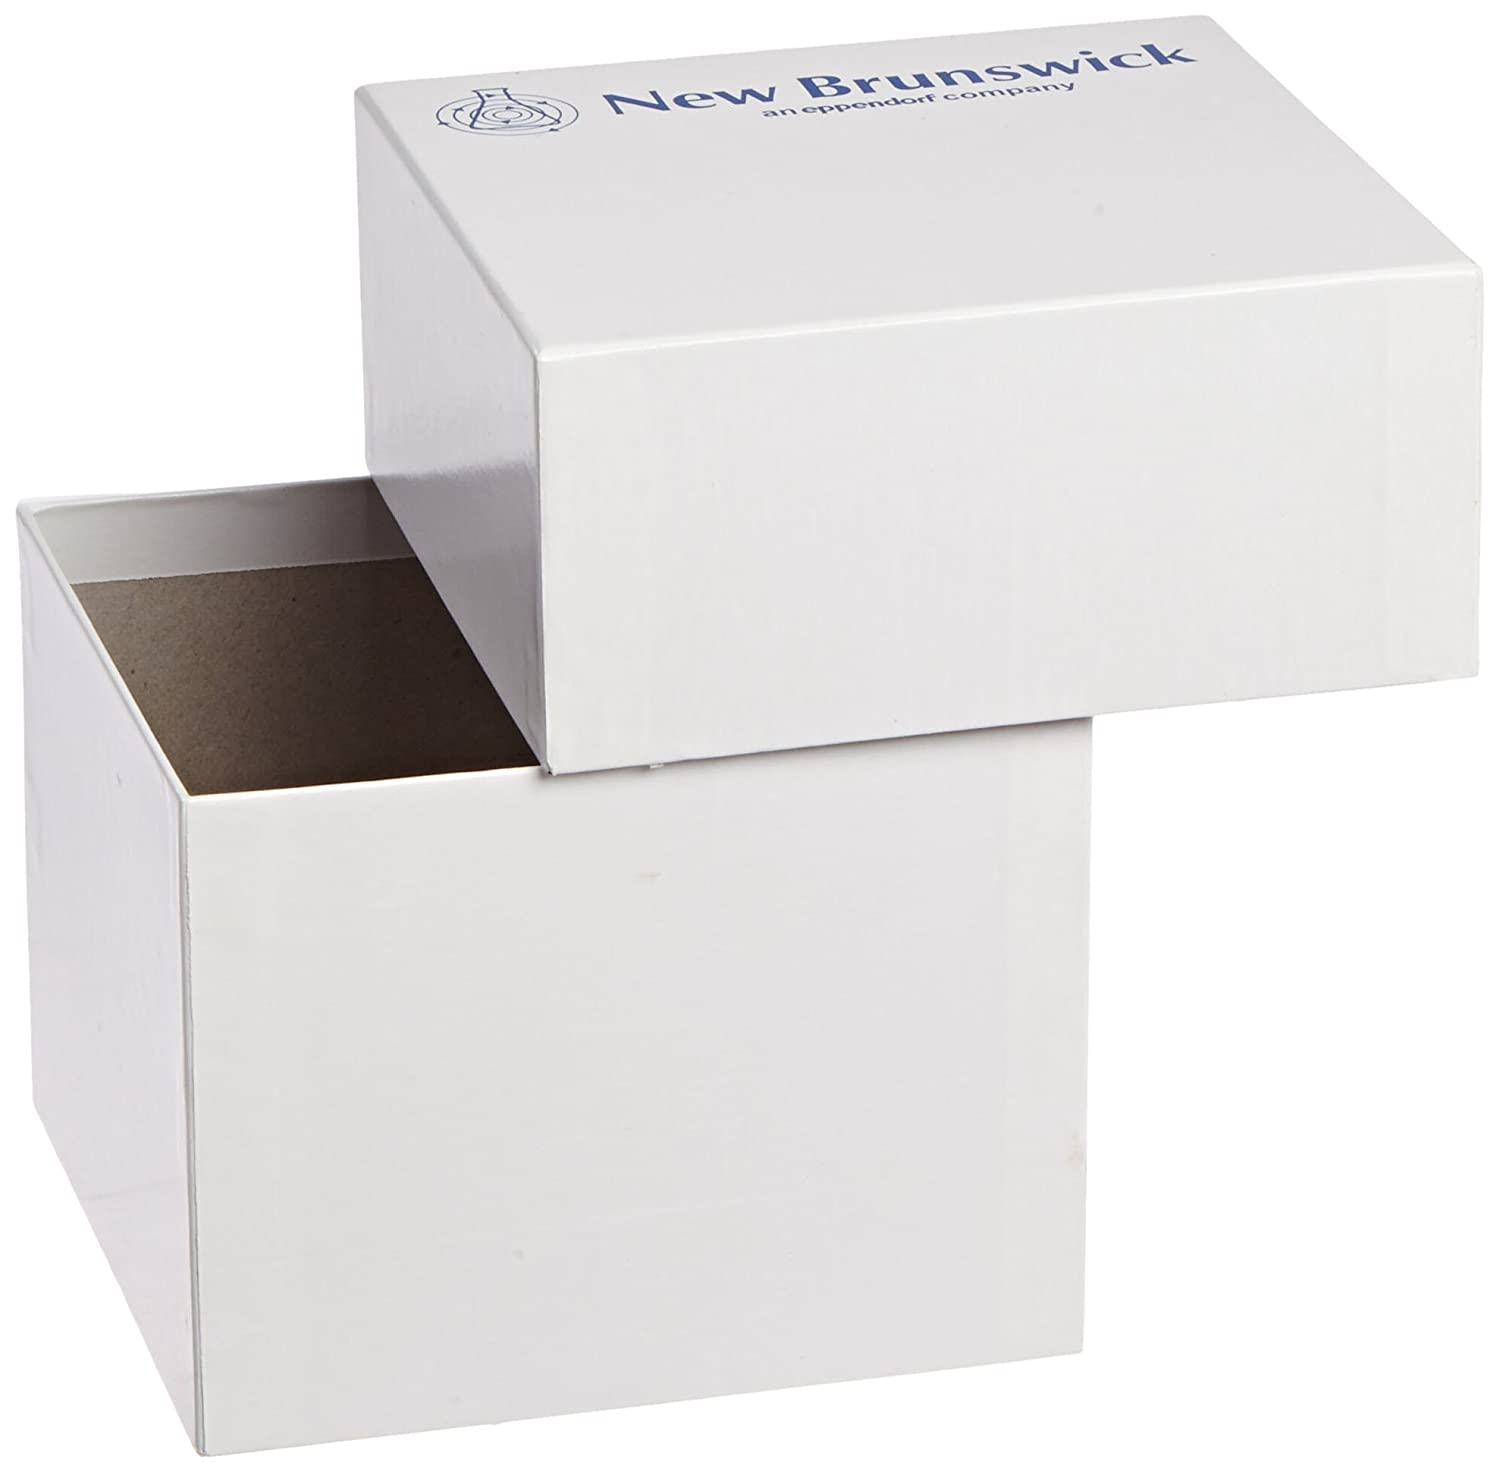 "Eppendorf B95-SQ Innova Ultra-low Temperature Laboratory Freezer Box, 4"" Height, 6 Boxes/Rack"